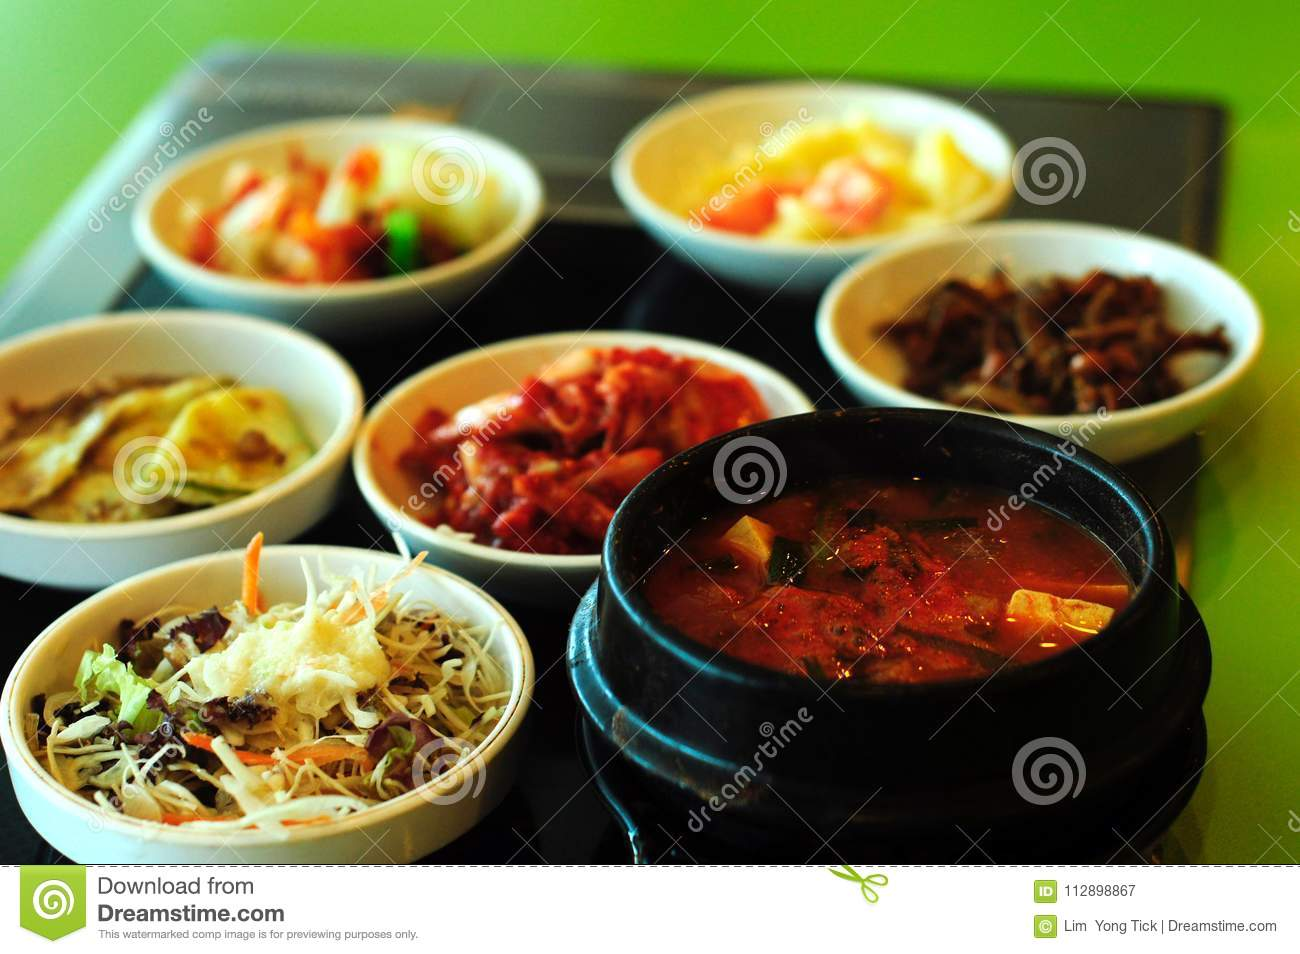 Korean Food At Modern Restaurant Stock Image Image Of Pickle Person 112898867